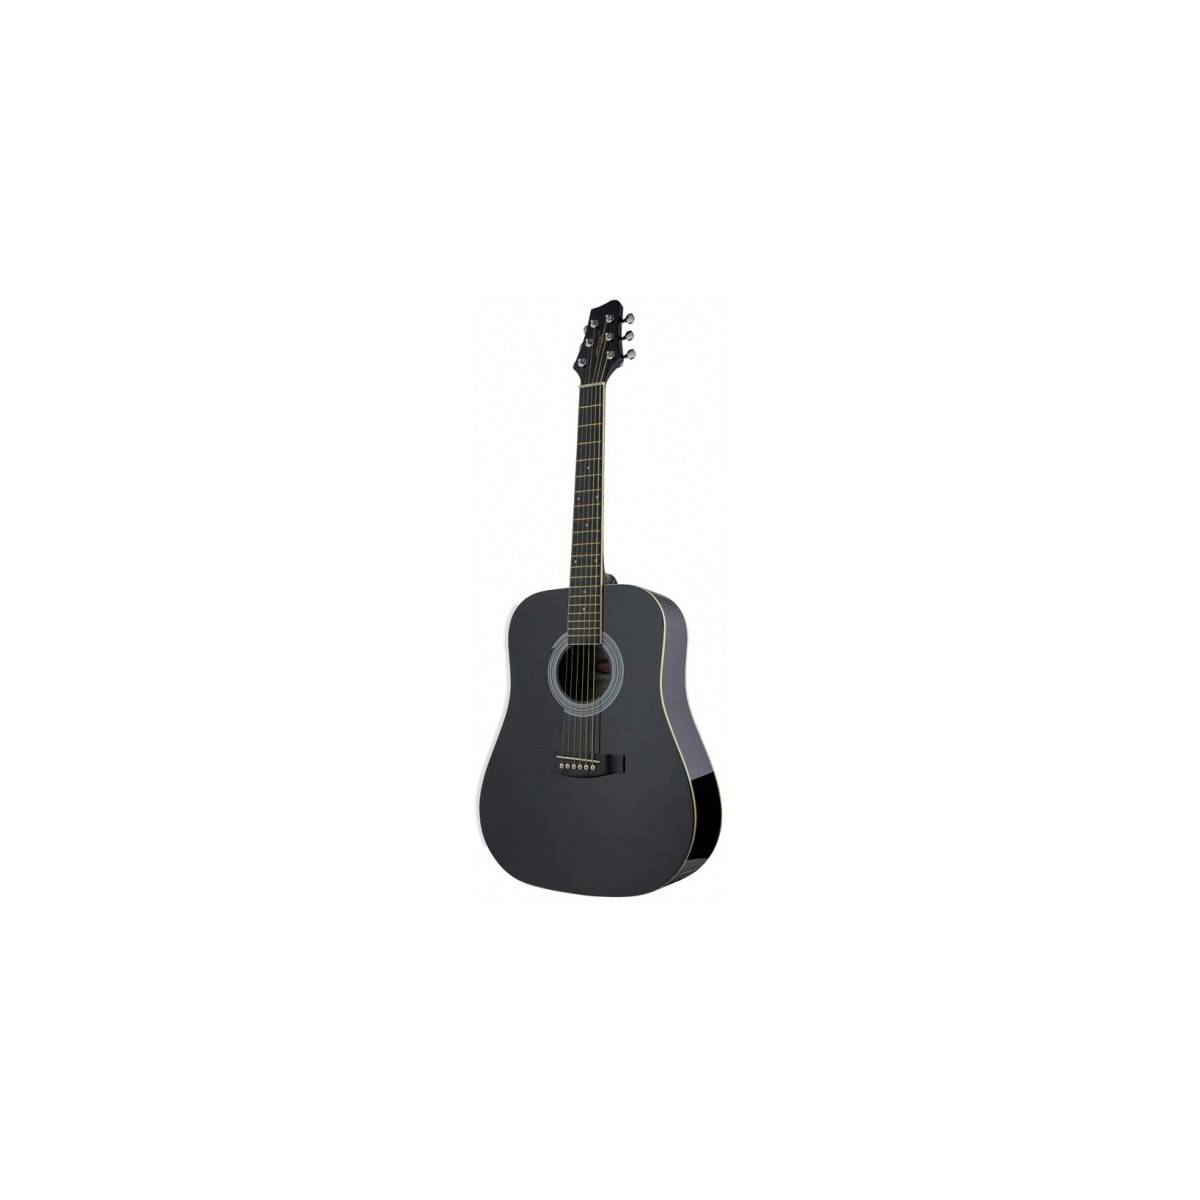 Guitare Gaucher enfant 3/4 folk black